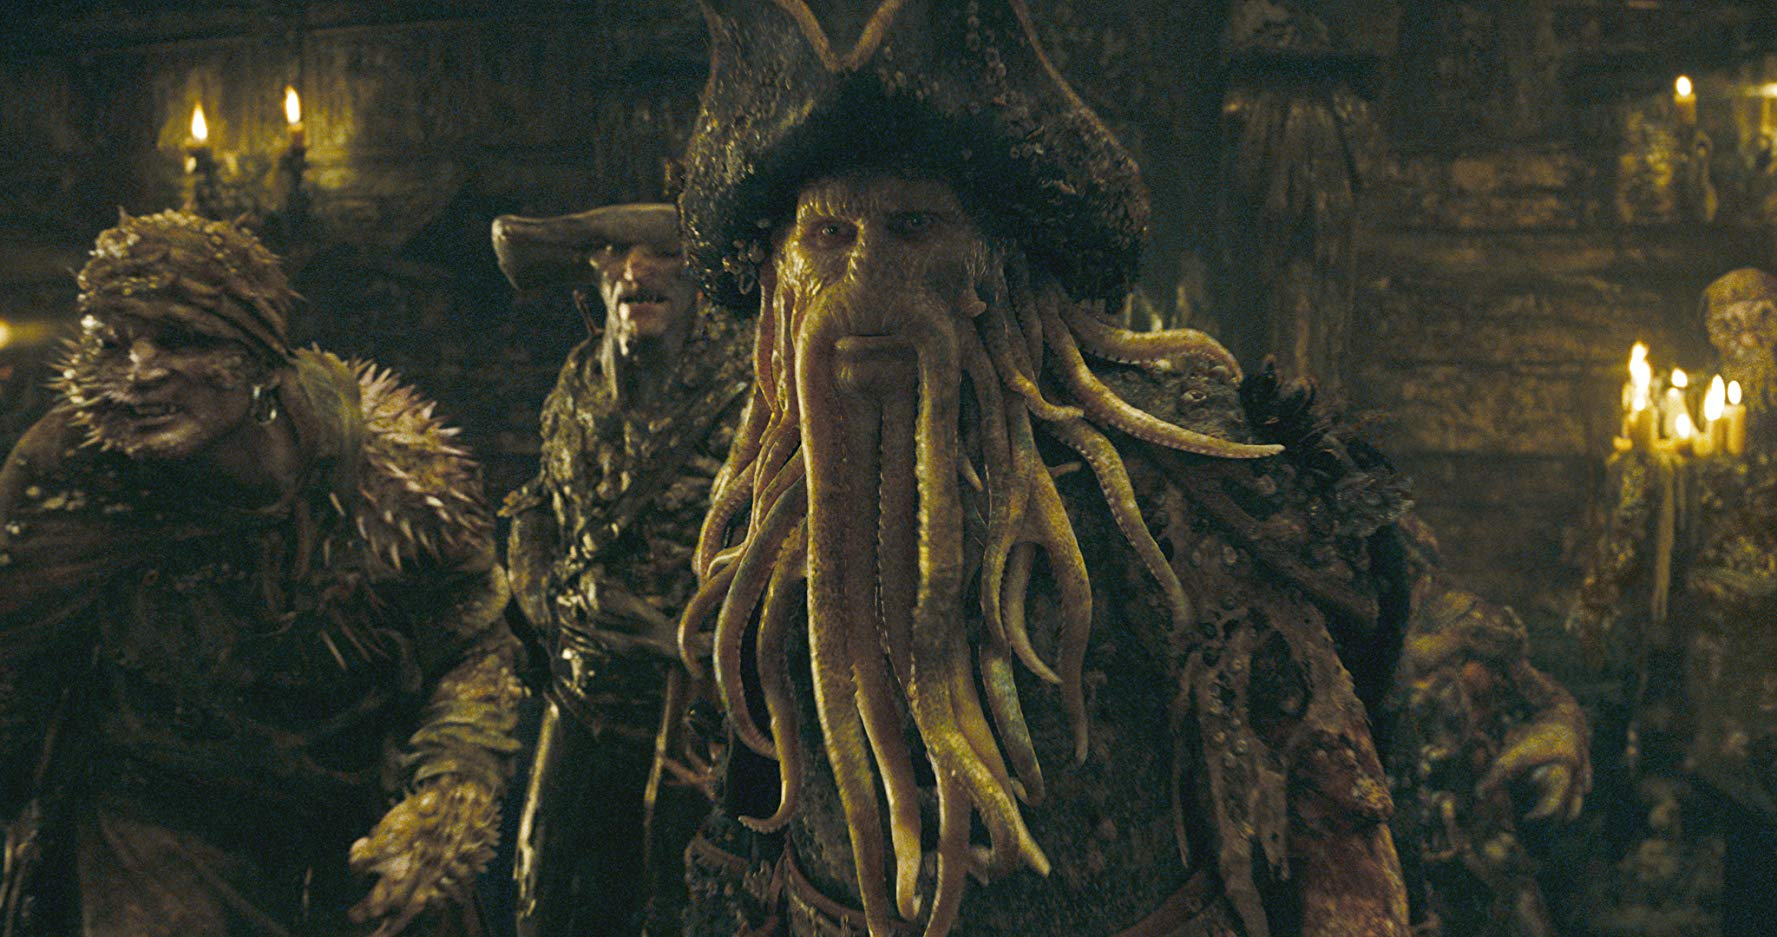 Davy Jones from The Pirates of the Caribbean